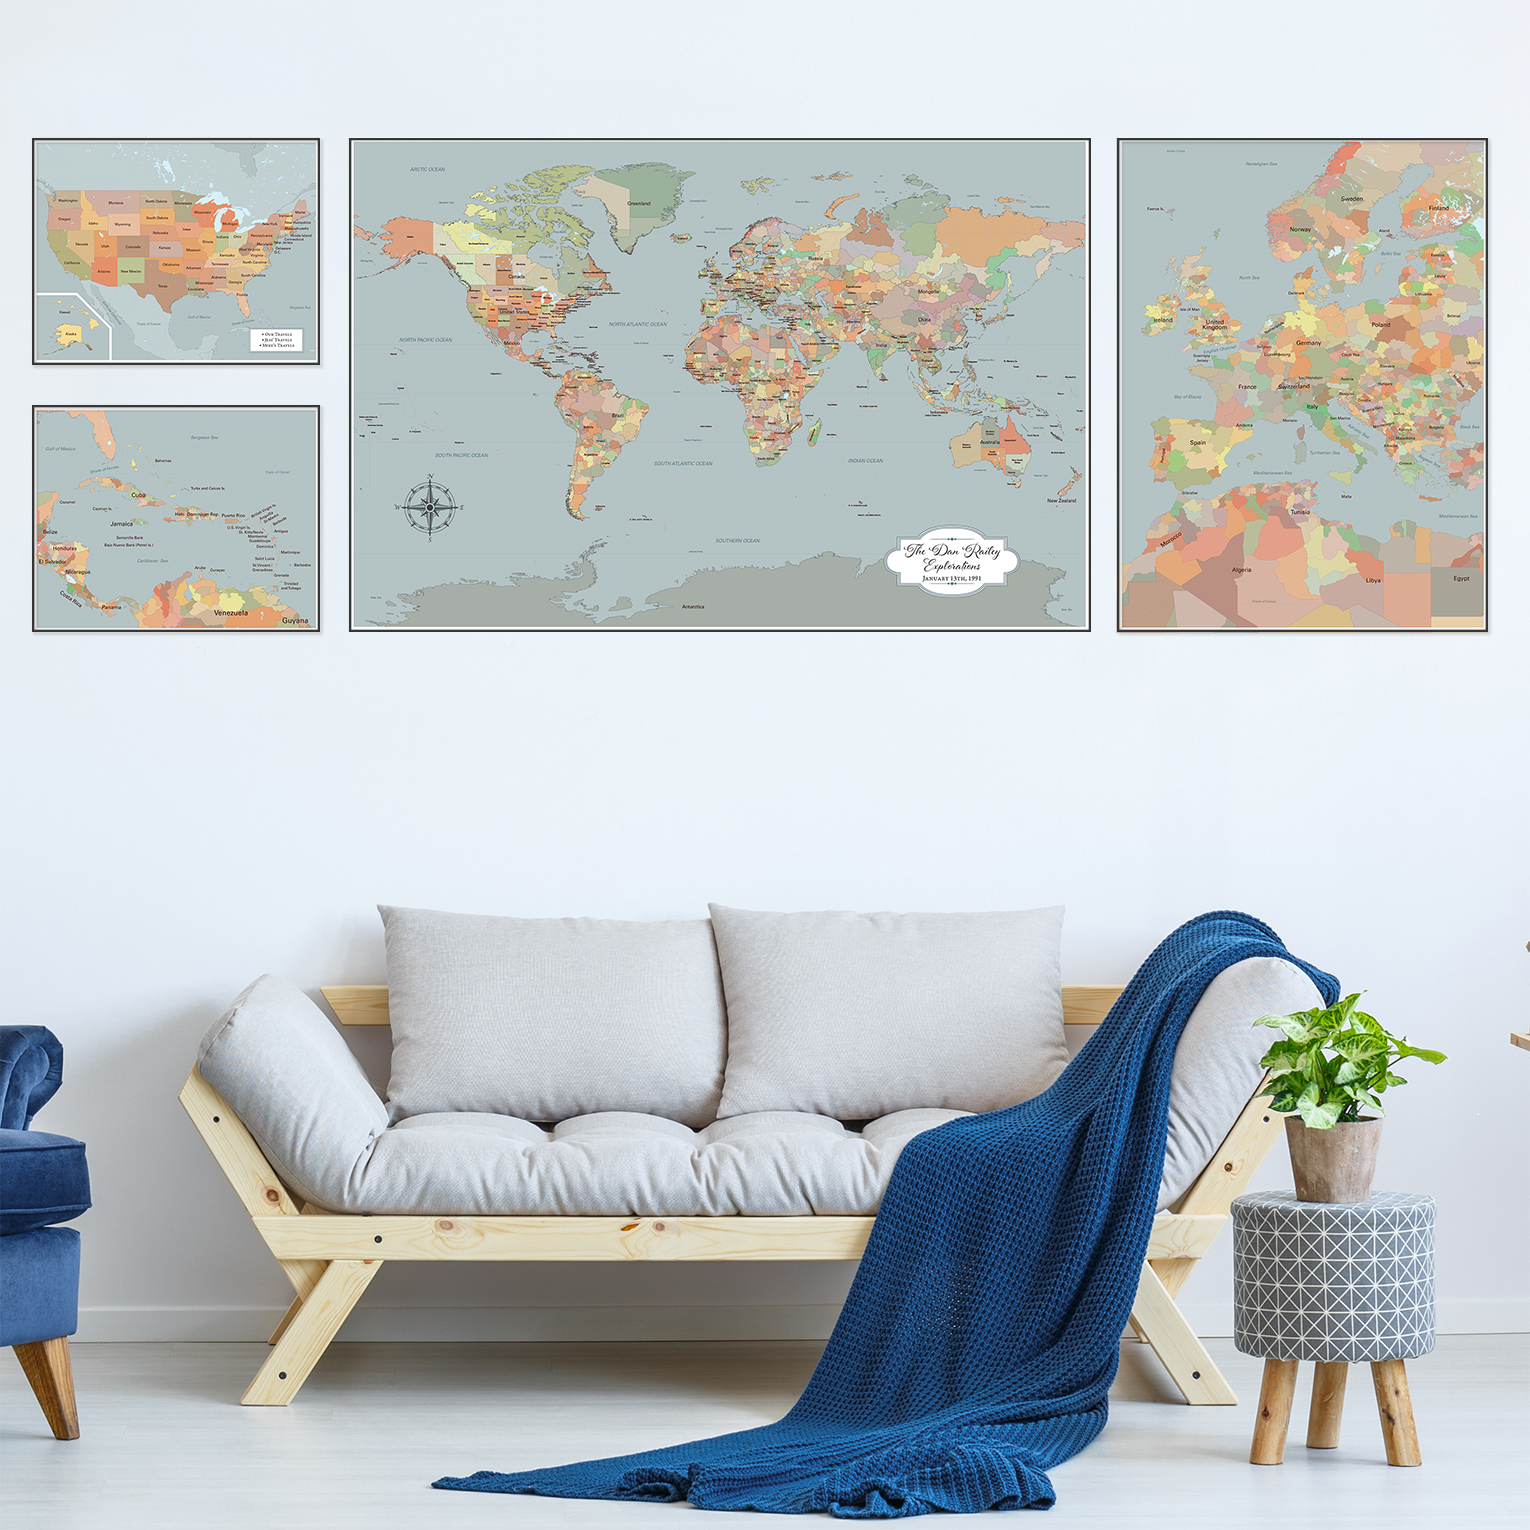 Large world map wall art set of 4 push pin maps with pins large world map wall art set of 4 push pin maps with pins personalized amipublicfo Images